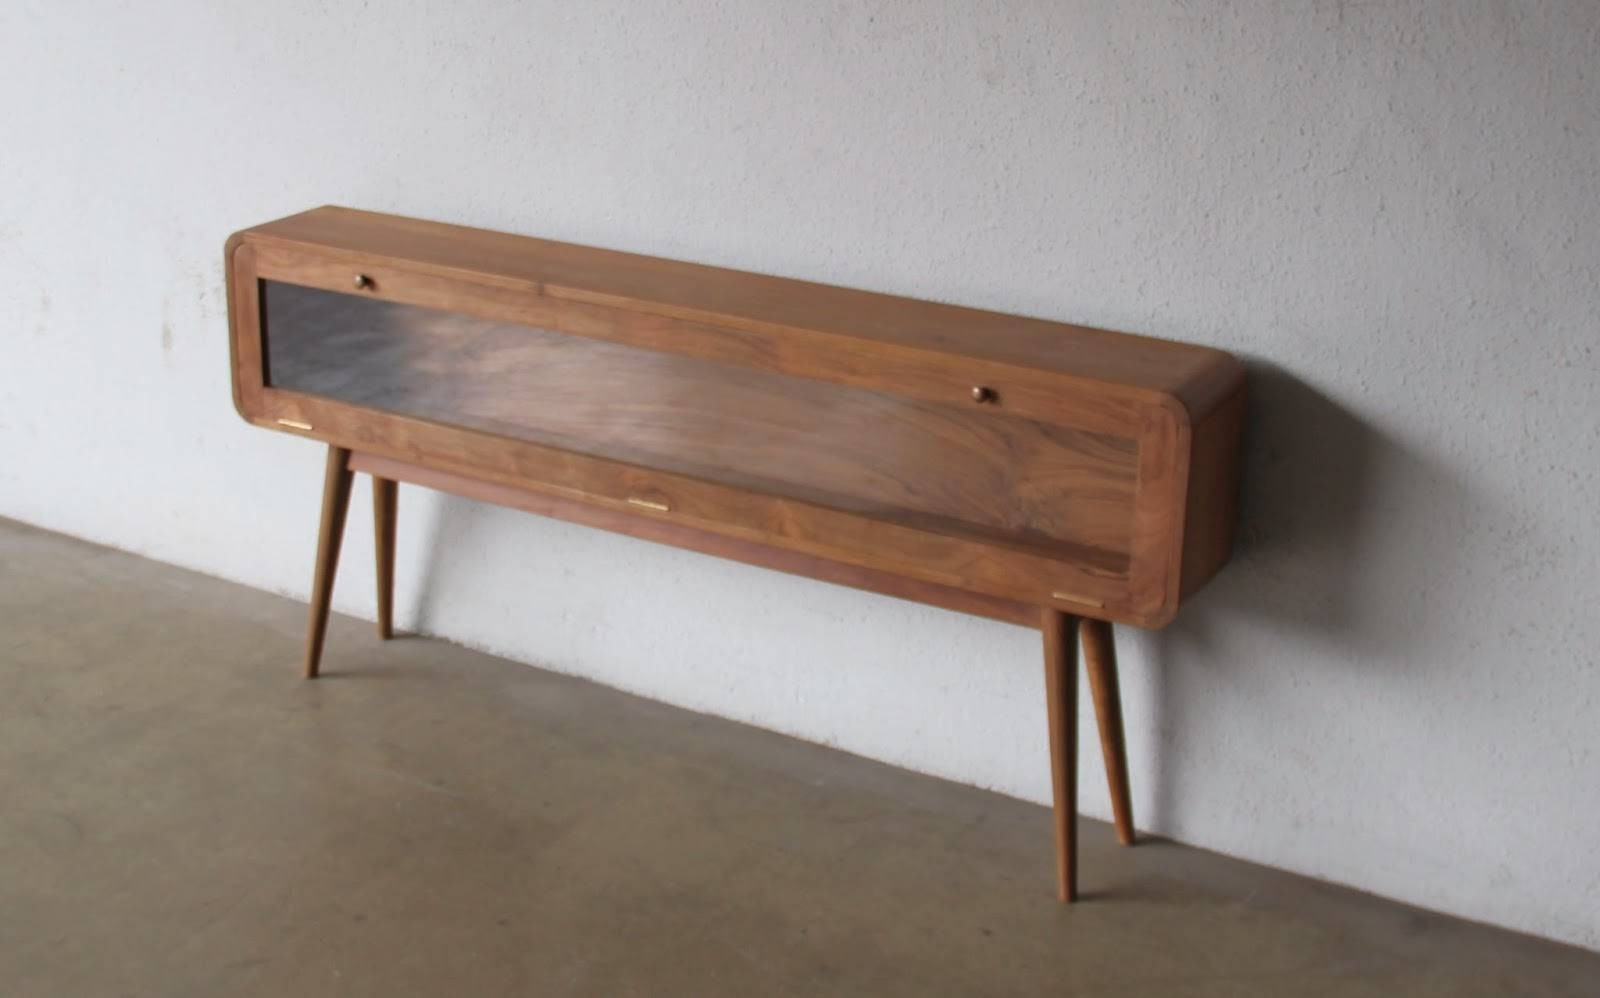 Second Charm Furniture - Mid Century Modern Influence | Bobs Furniture pertaining to Long Narrow Sideboards (Image 15 of 30)